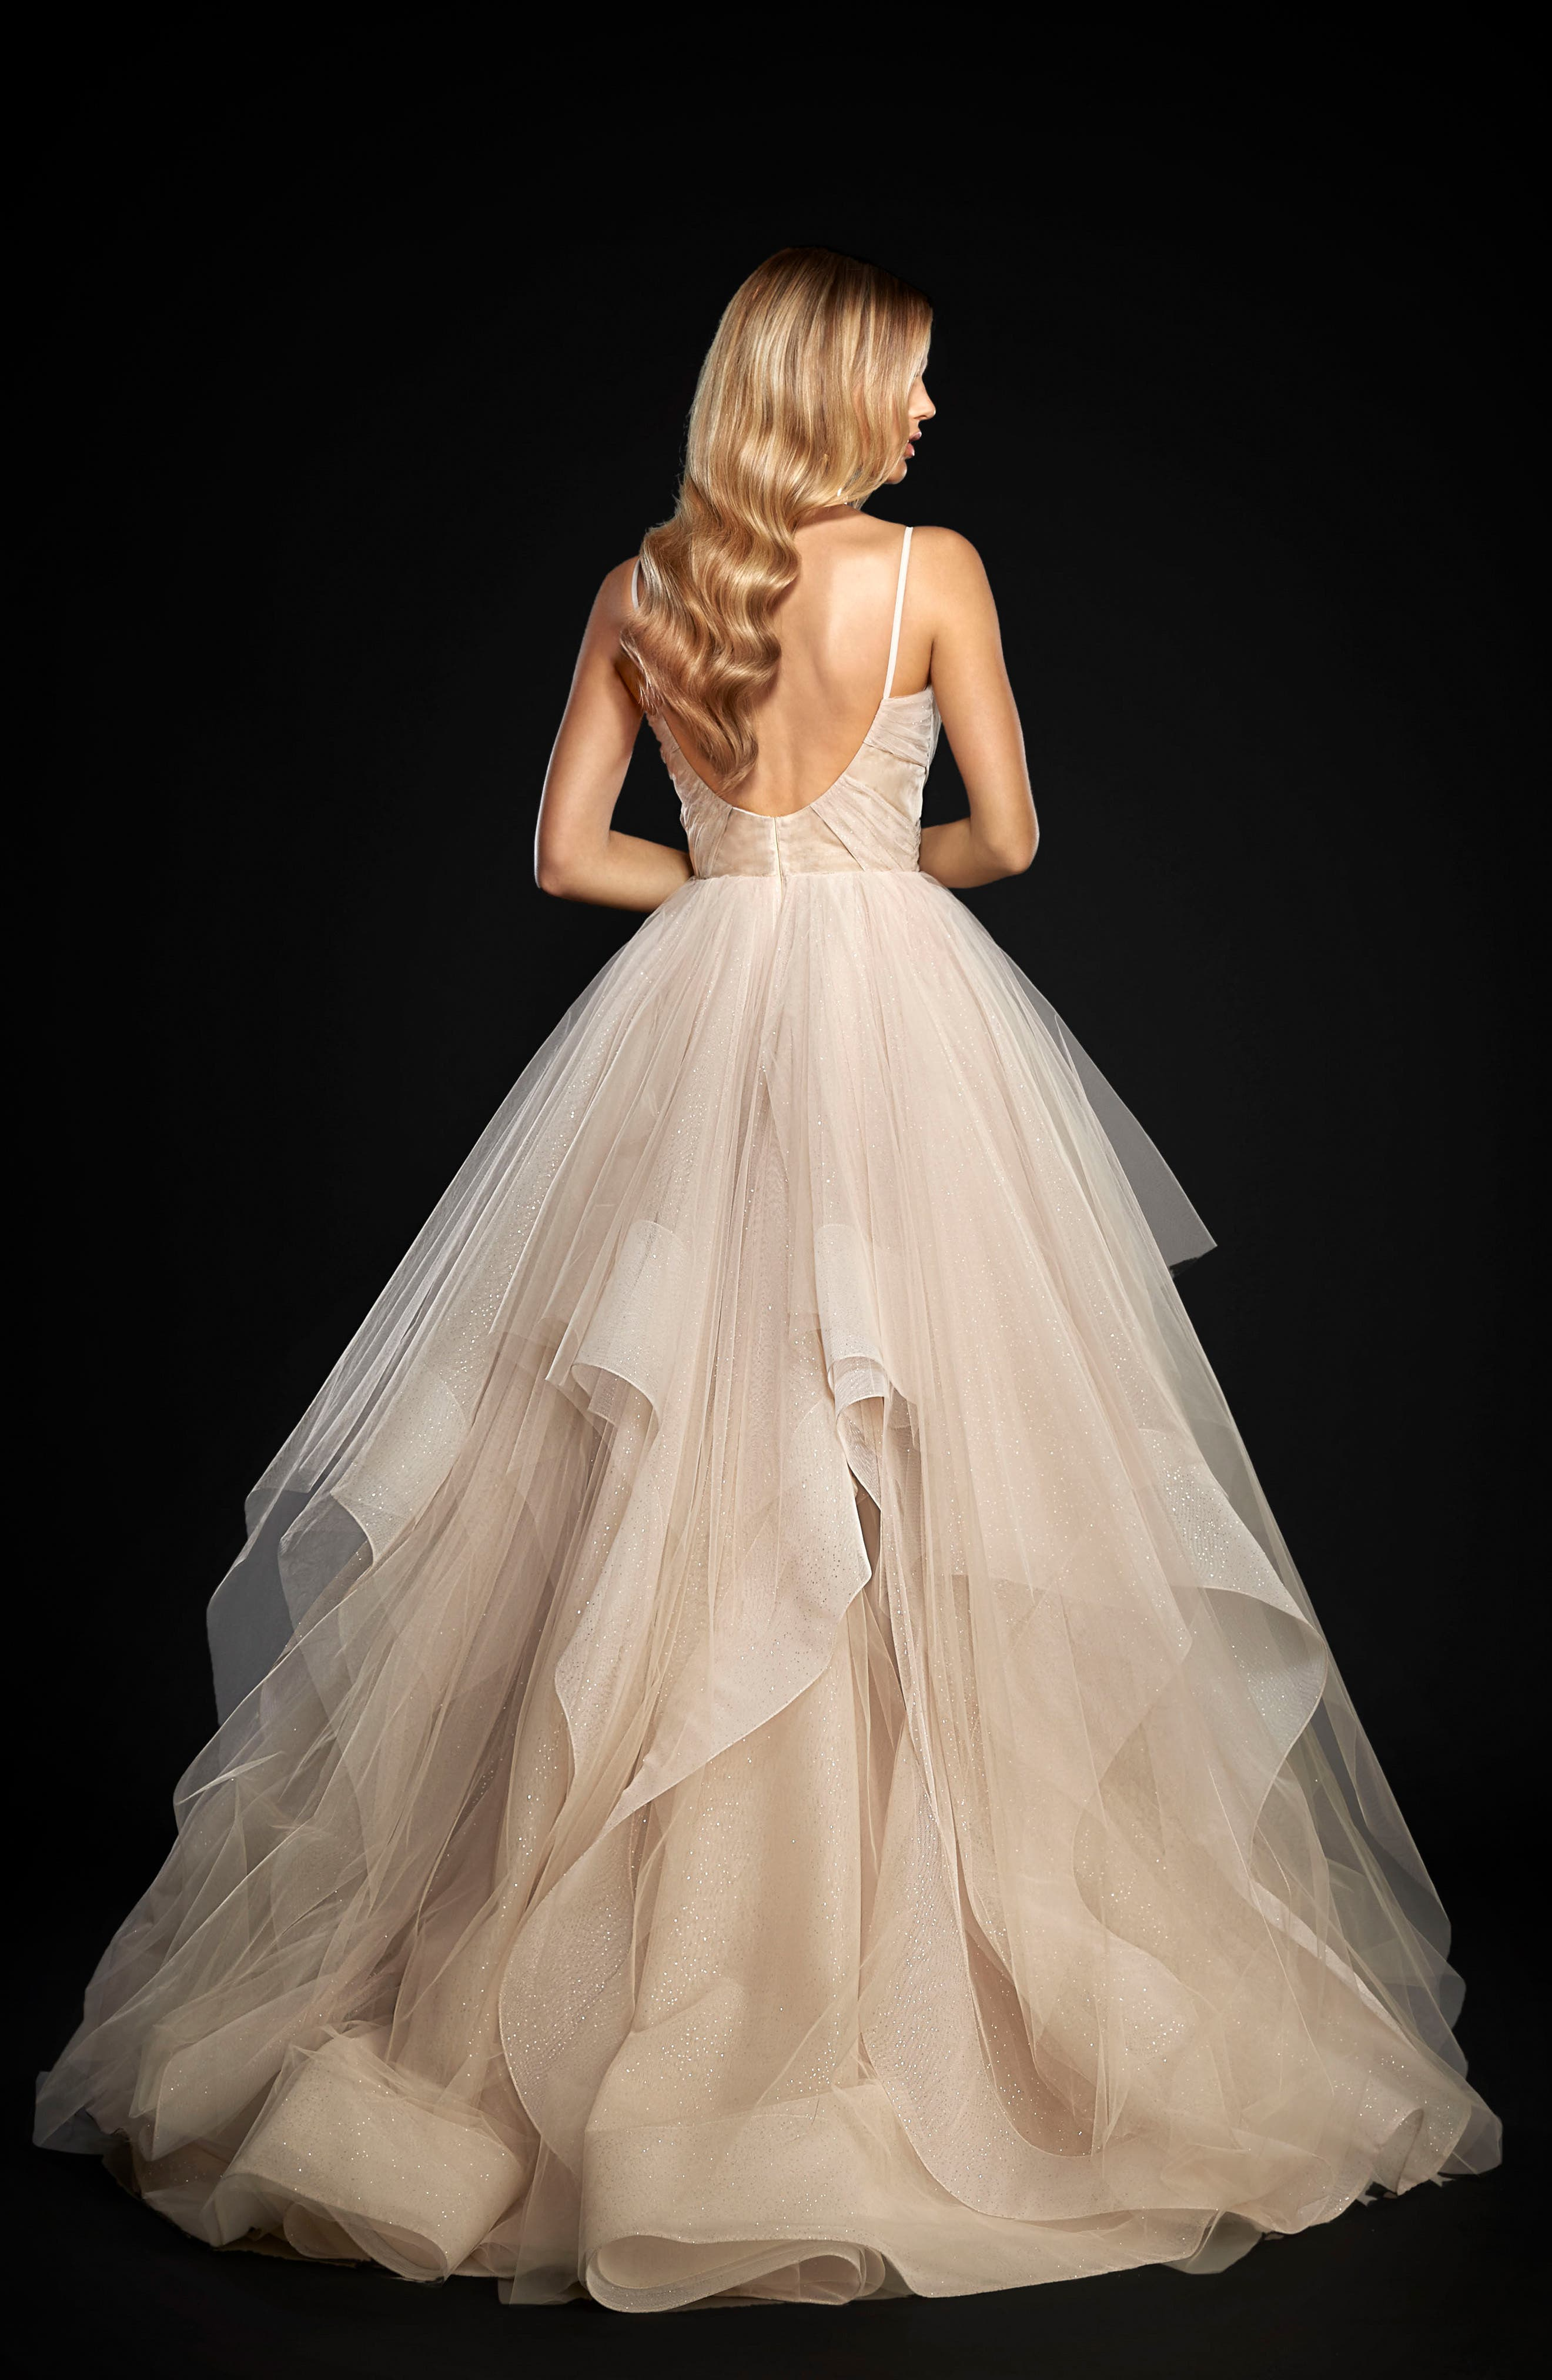 Chandon Stardust Tulle Ballgown,                             Alternate thumbnail 2, color,                             MOET